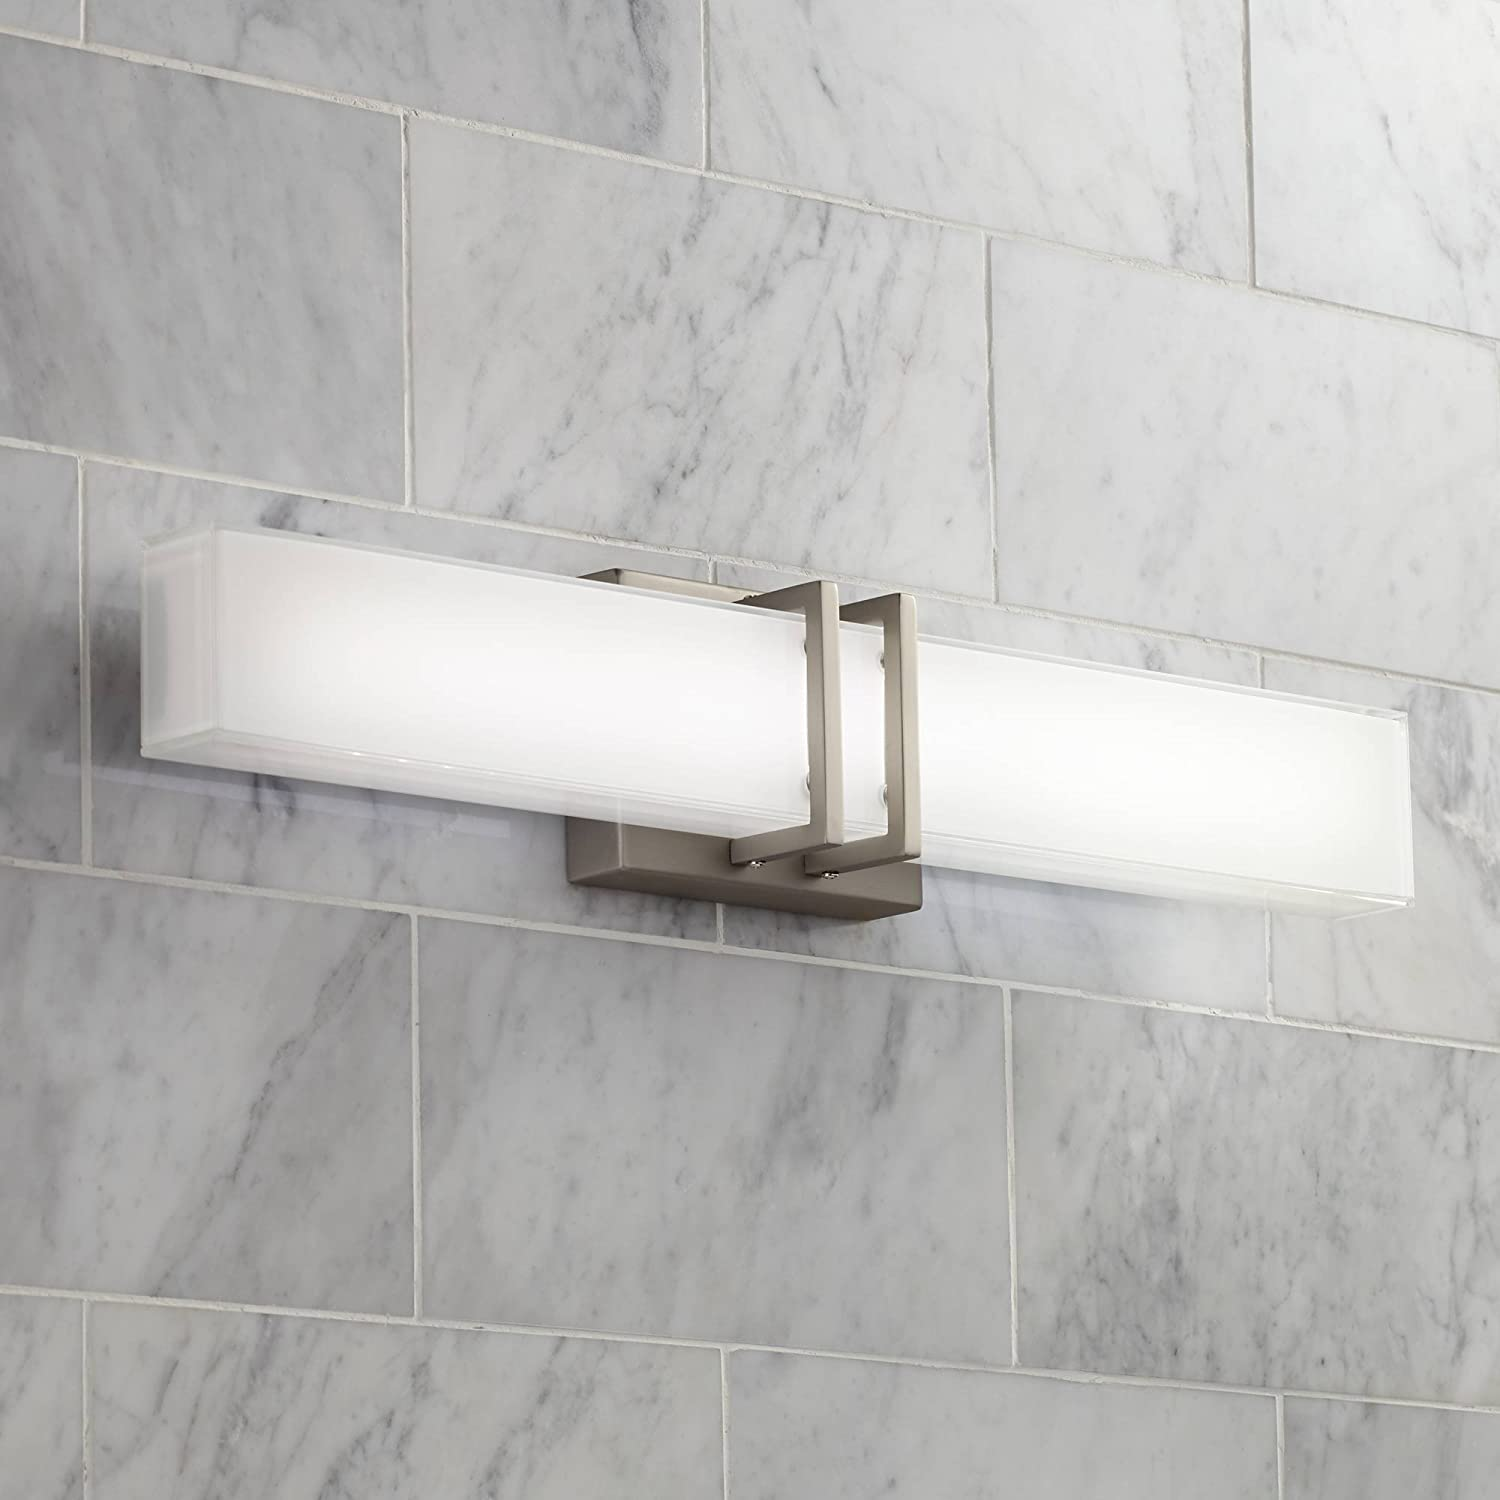 Exeter Modern Wall Light LED Brushed Nickel 24 Wide Vanity Bar Fixture for Bathroom Over Mirror – Possini Euro Design